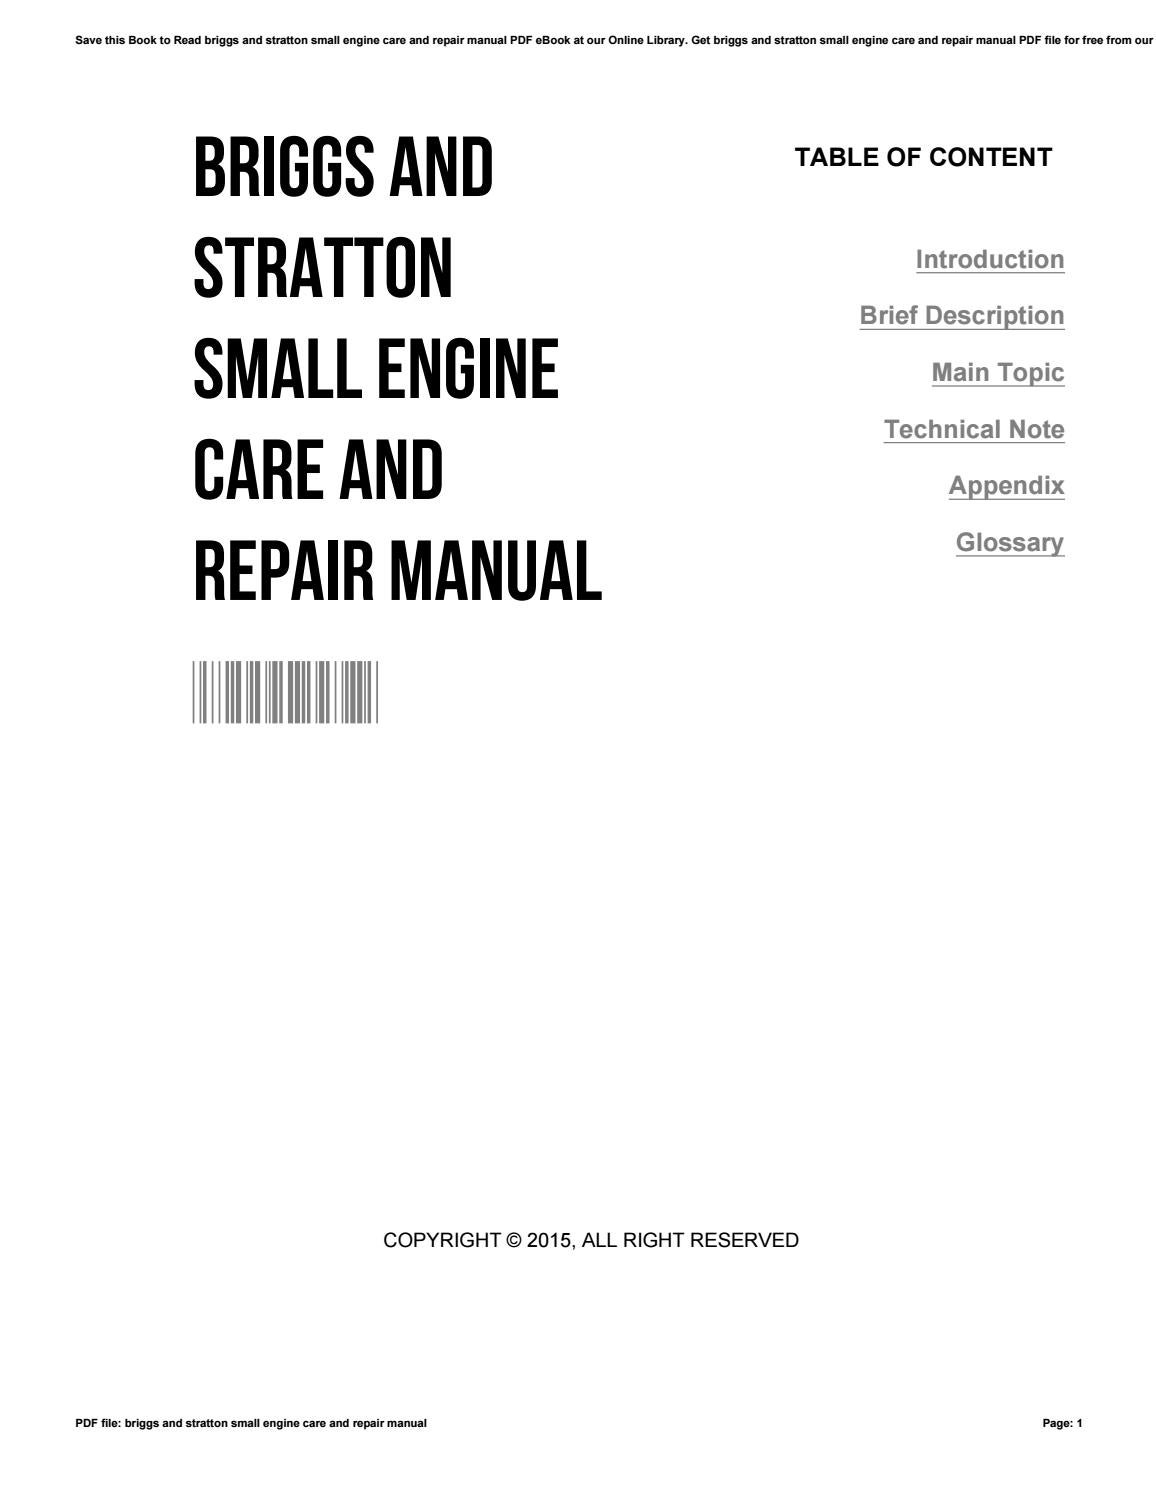 Briggs And Stratton Small Engine Care And Repair Manual By